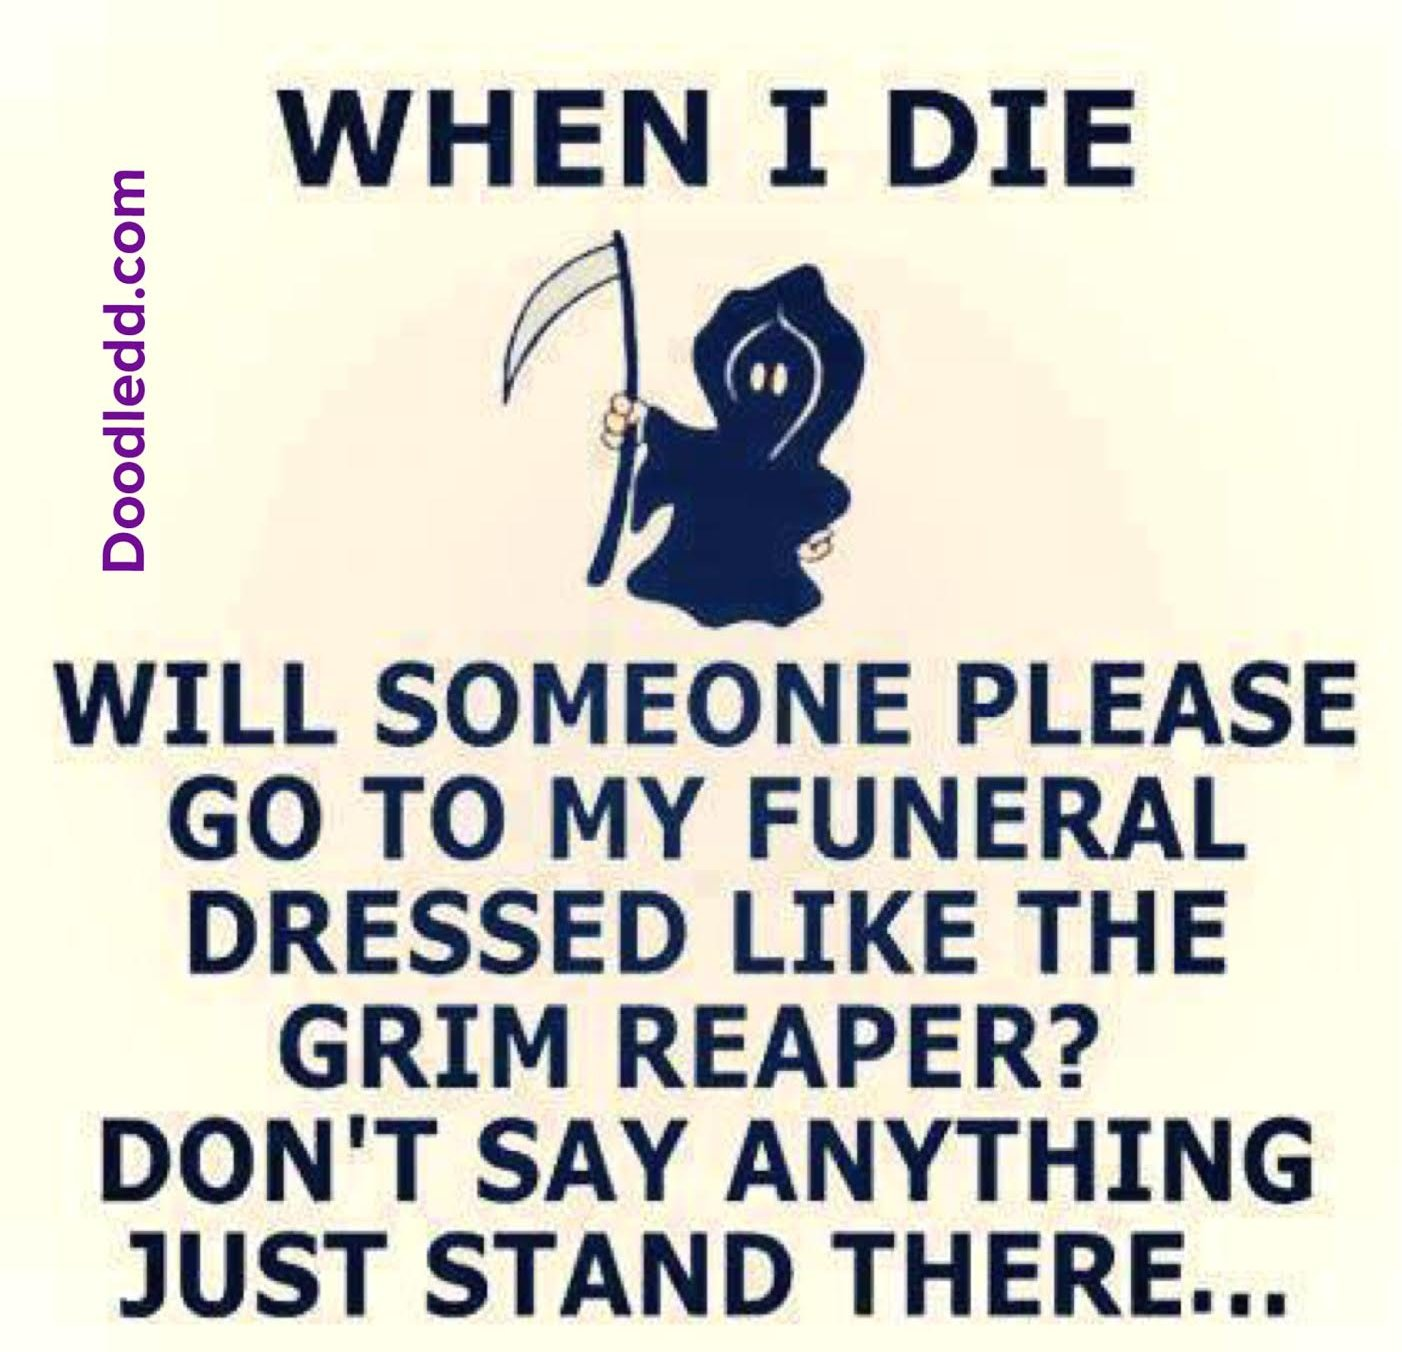 """When I die will someone please go to my funeral dressed like the GrimReaper? Don't say anything just stand there..."""